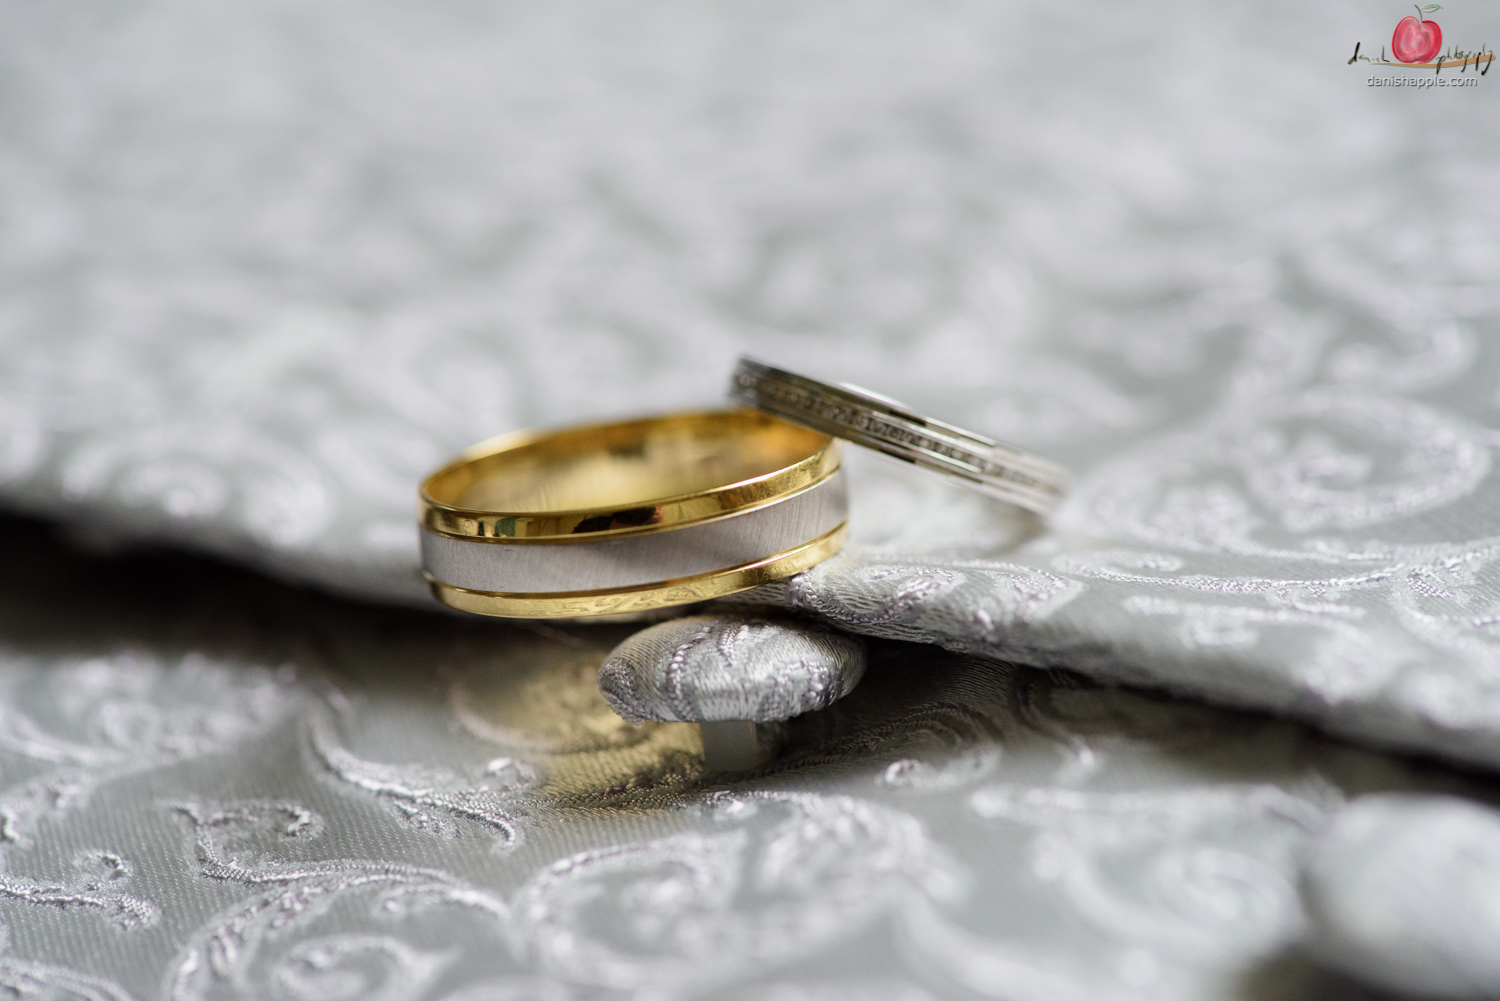 Wedding rings shot with Nikon d810